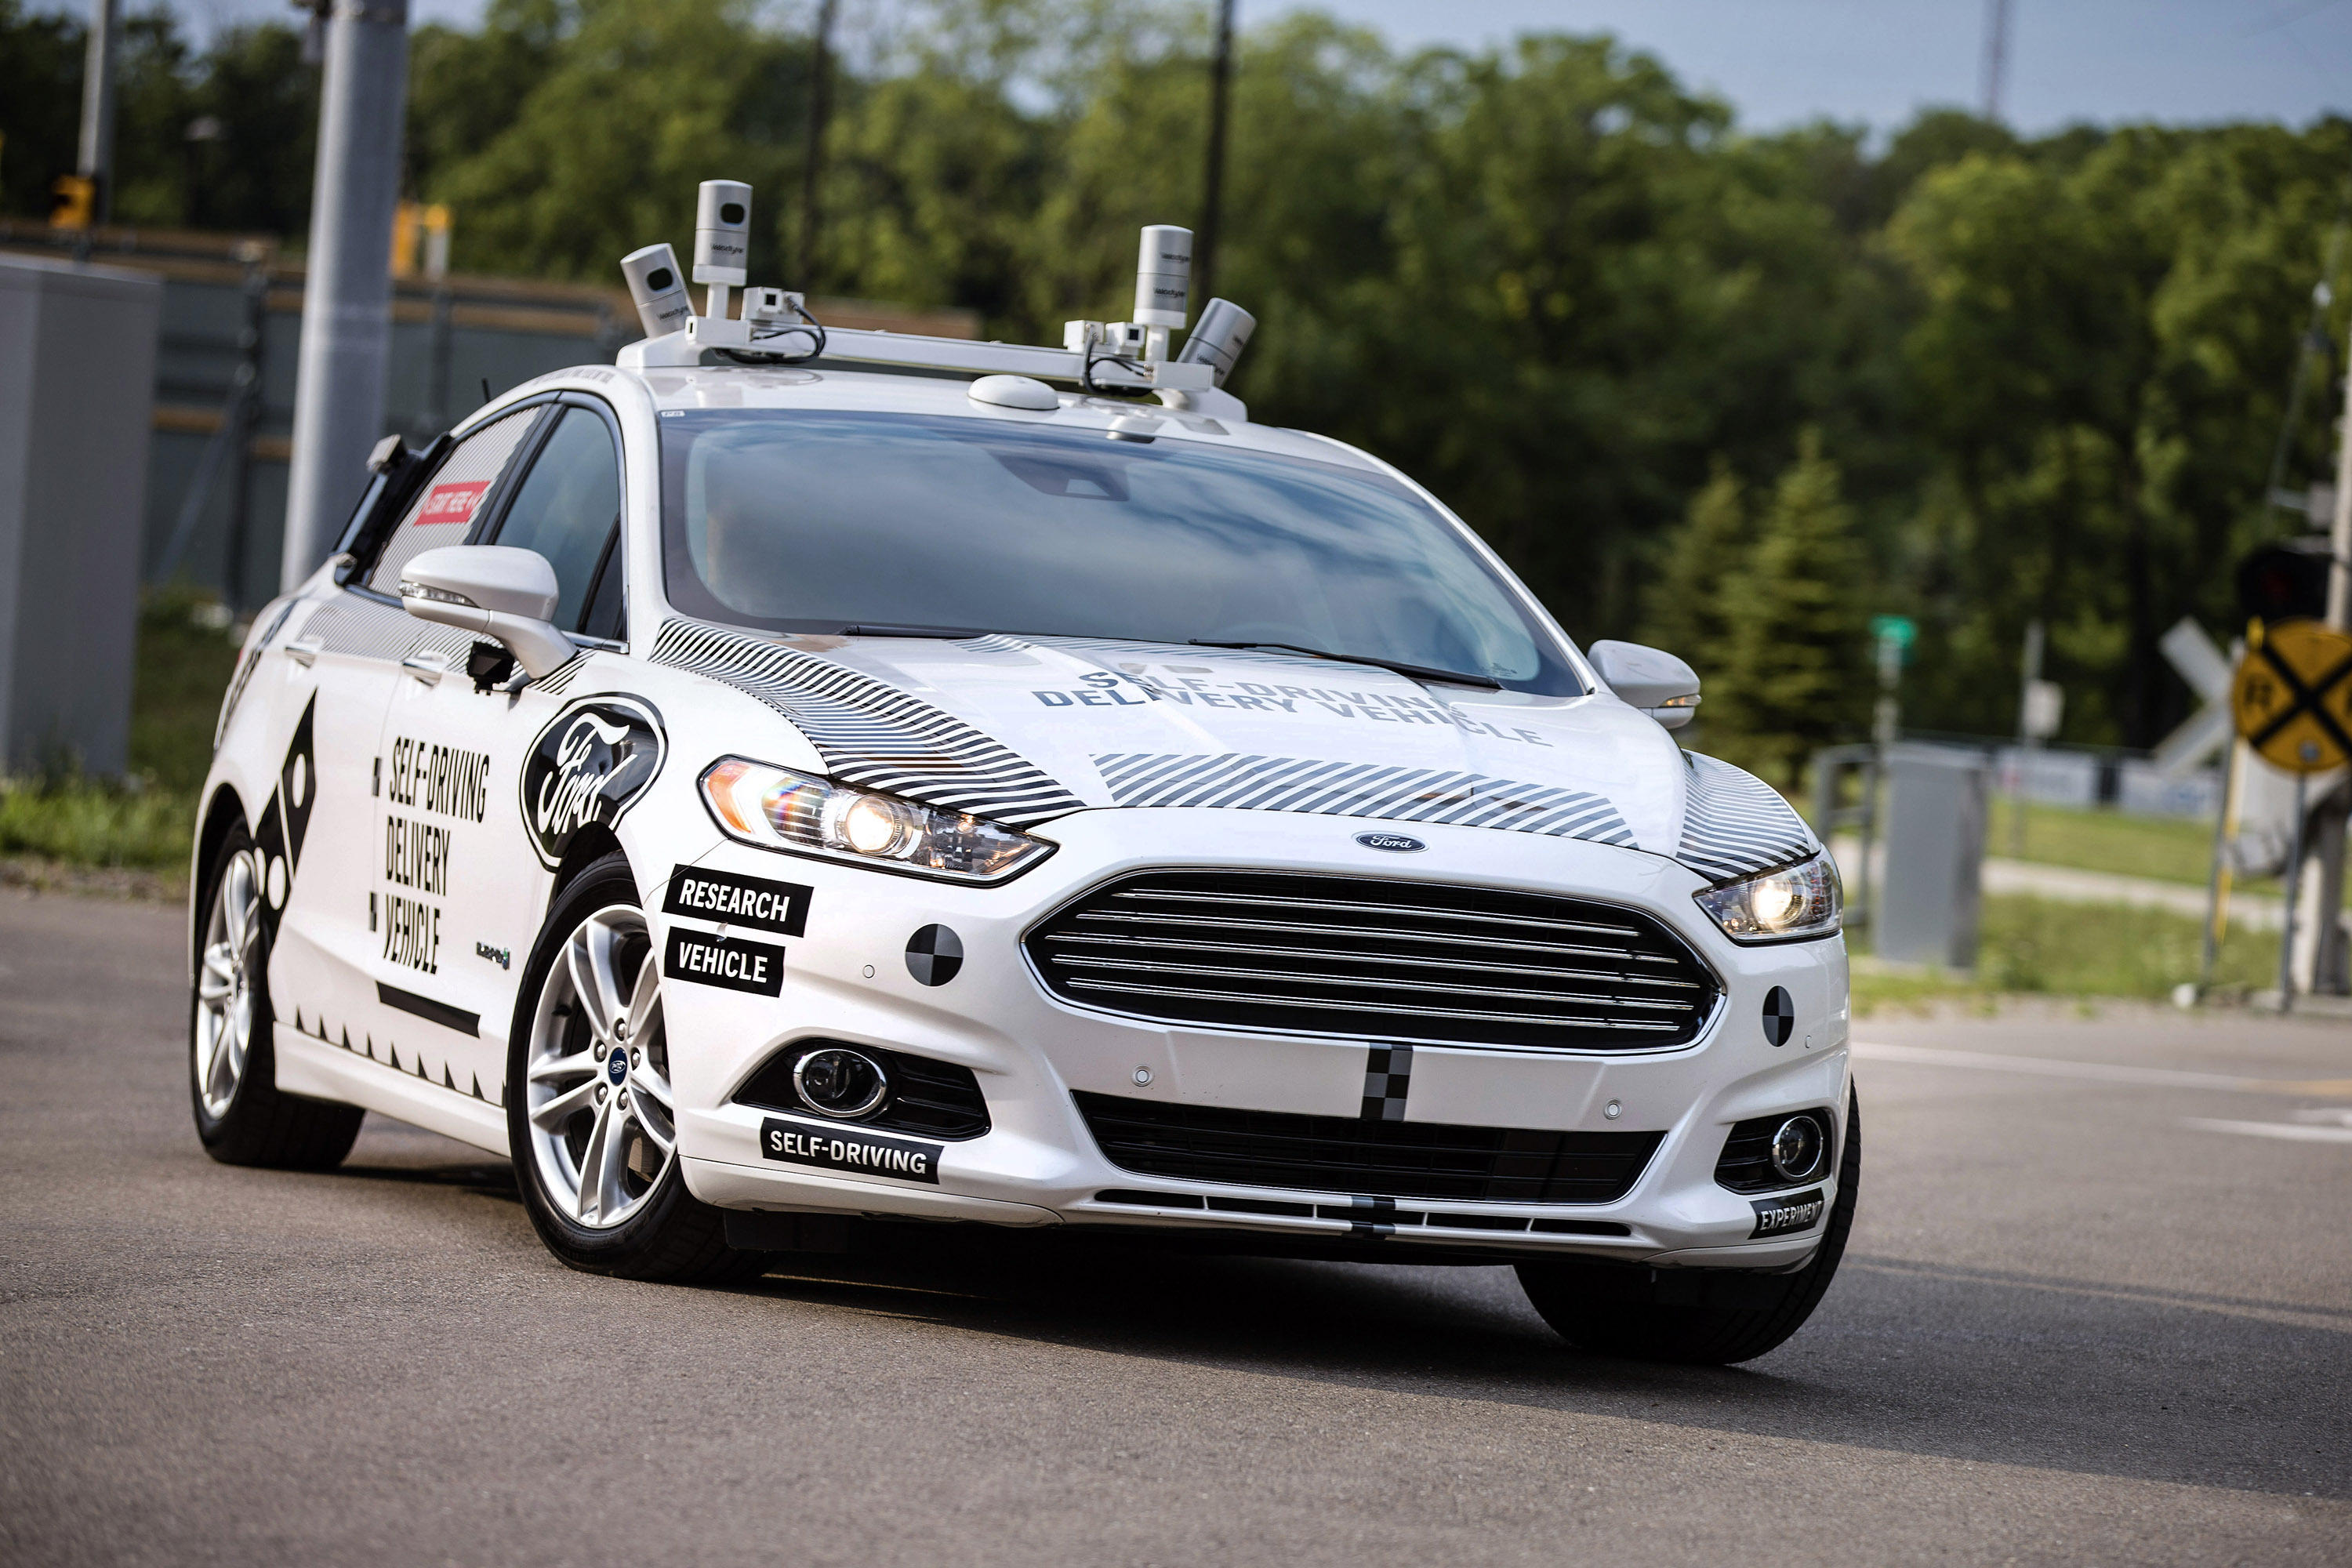 Ford Domino's Self-Driving Fusion